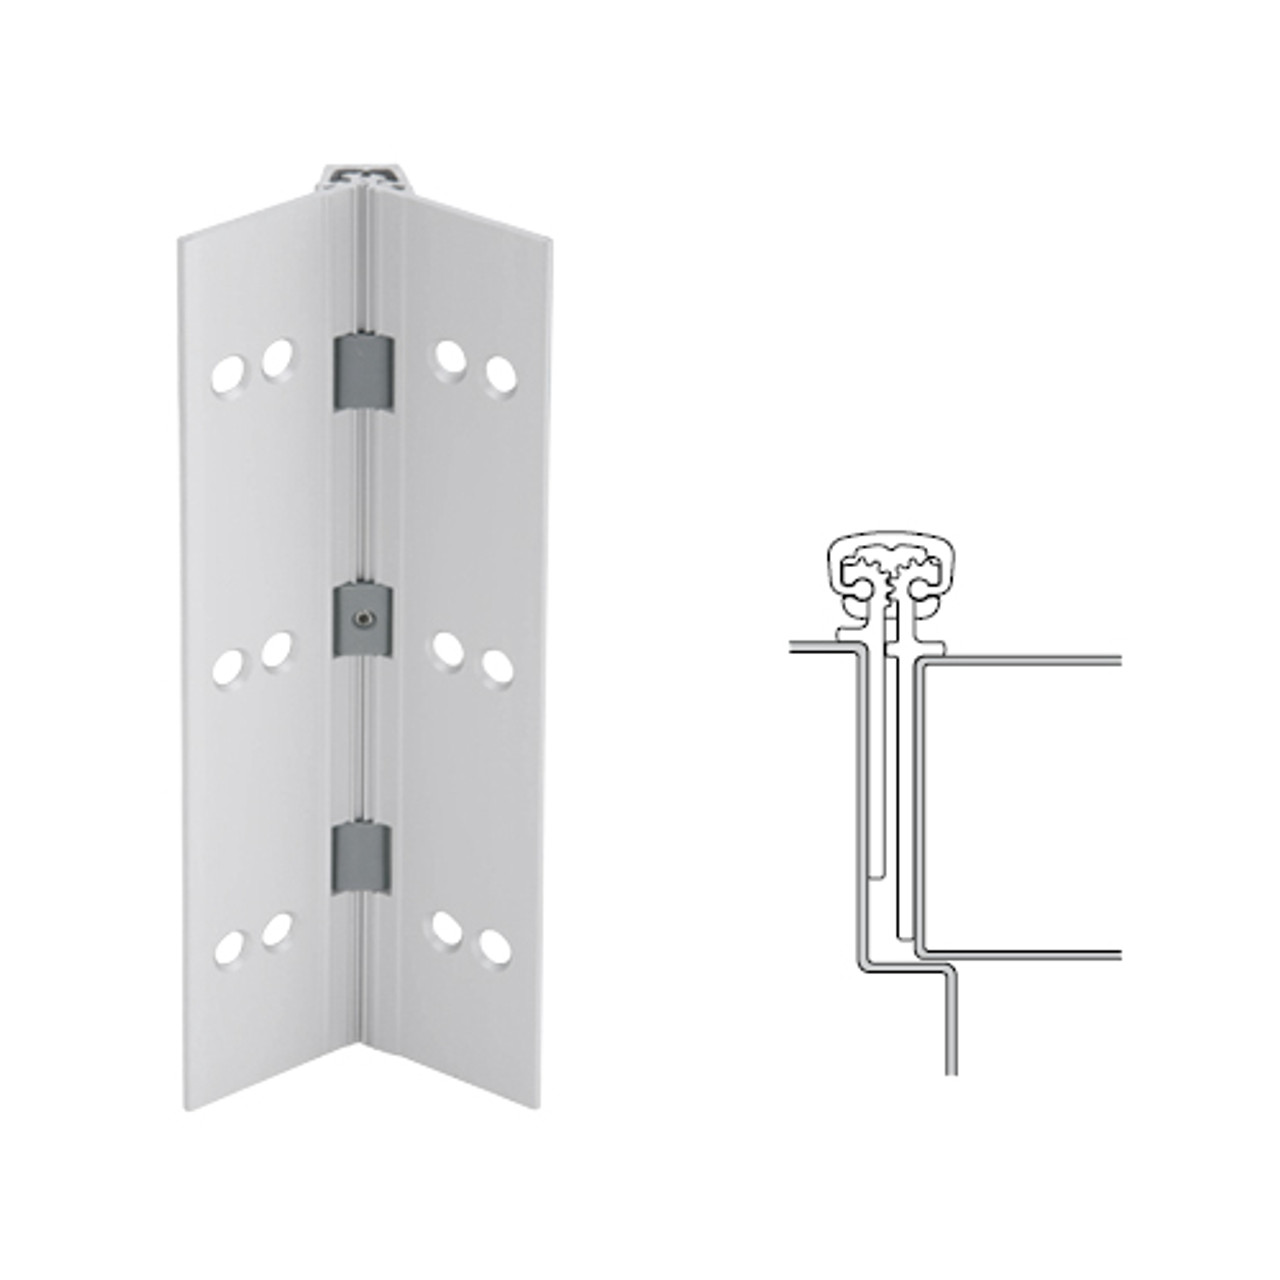 026XY-US28-85-HT IVES Full Mortise Continuous Geared Hinges with Hospital Tip in Satin Aluminum